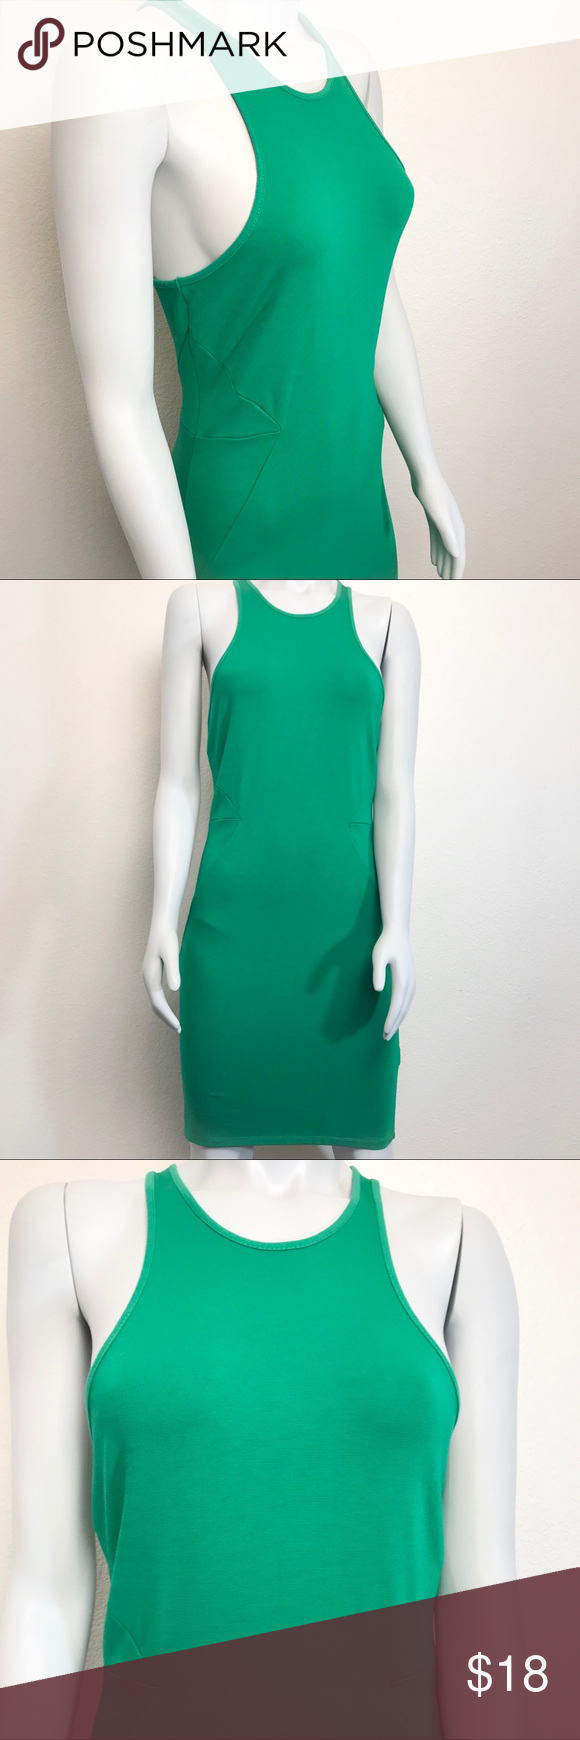 H M Green Racerback Bodycon Fit Dress Fitted Dress Bodycon Racerback [ 1740 x 580 Pixel ]